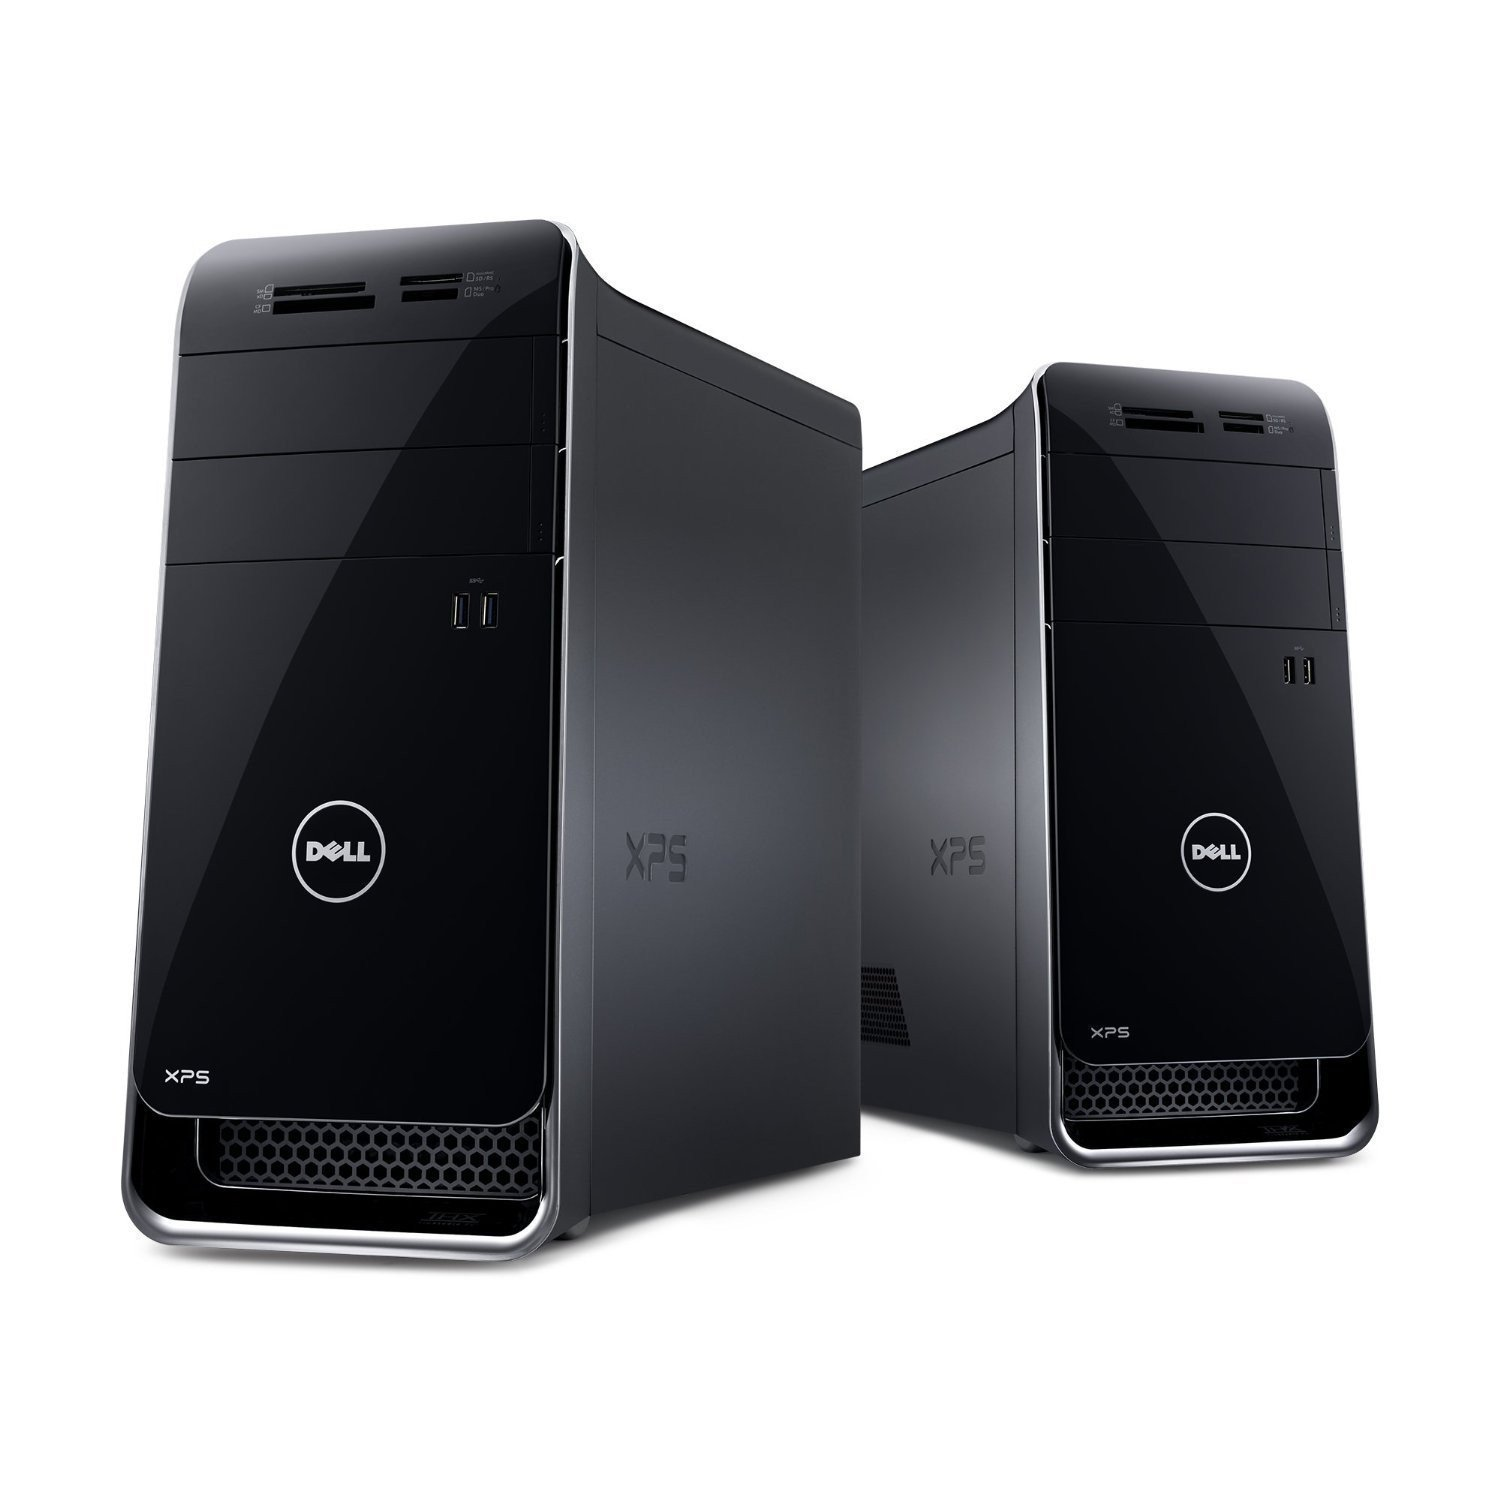 Dell XPS 8700 Desktop - Intel Core i7-4770 Quad-Core Haswell up to 3.9 GHz, 32GB Memory, 512GB SSD + 4TB SATA Hard Drive, 2GB AMD Radeon HD R9 270, Blu-ray Burner, Windows 7 Professional monoblok lenovob550 23 fhd i7 4770